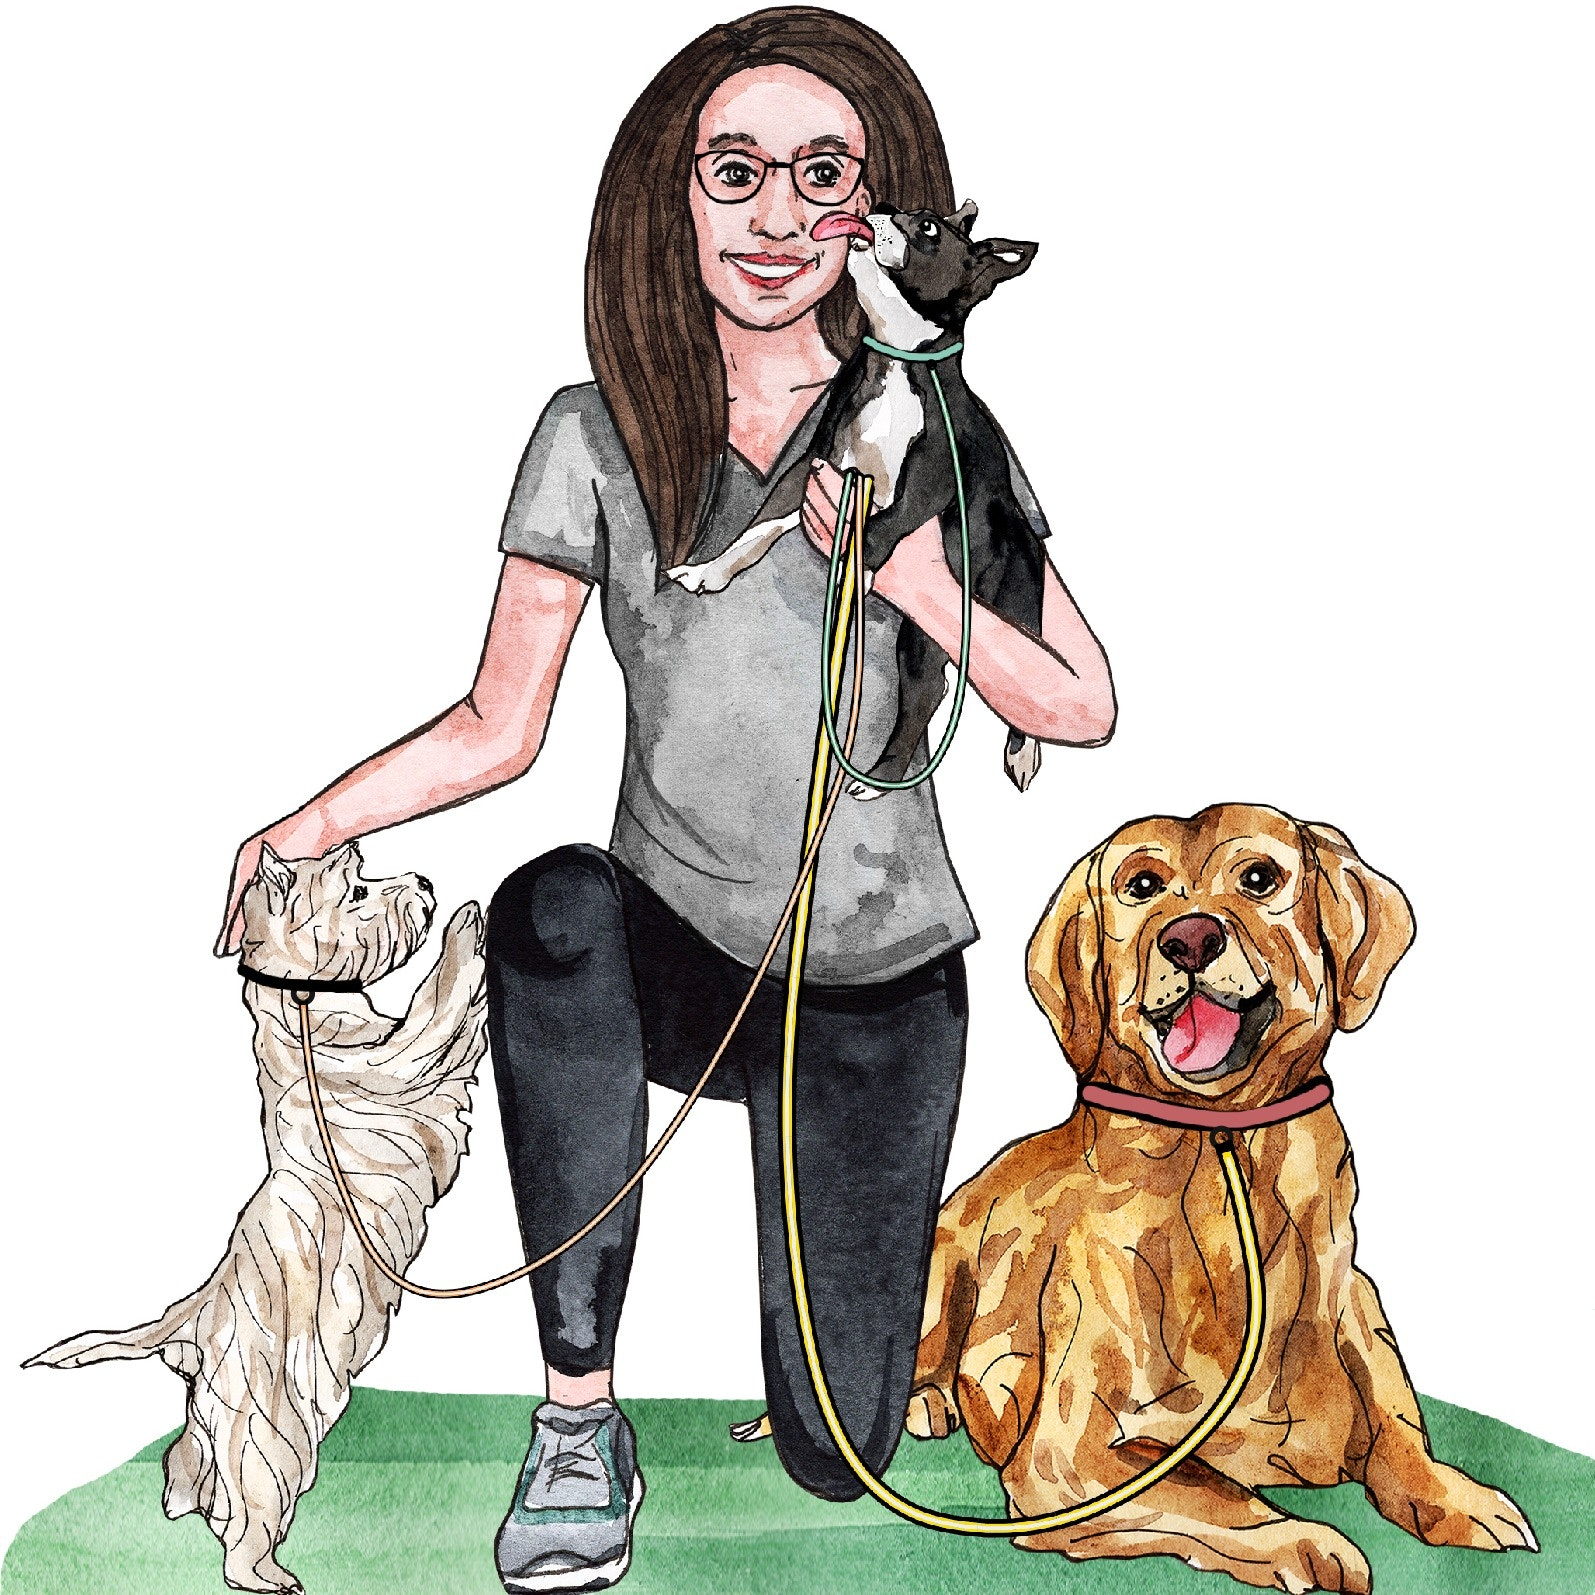 Charity's dog day care